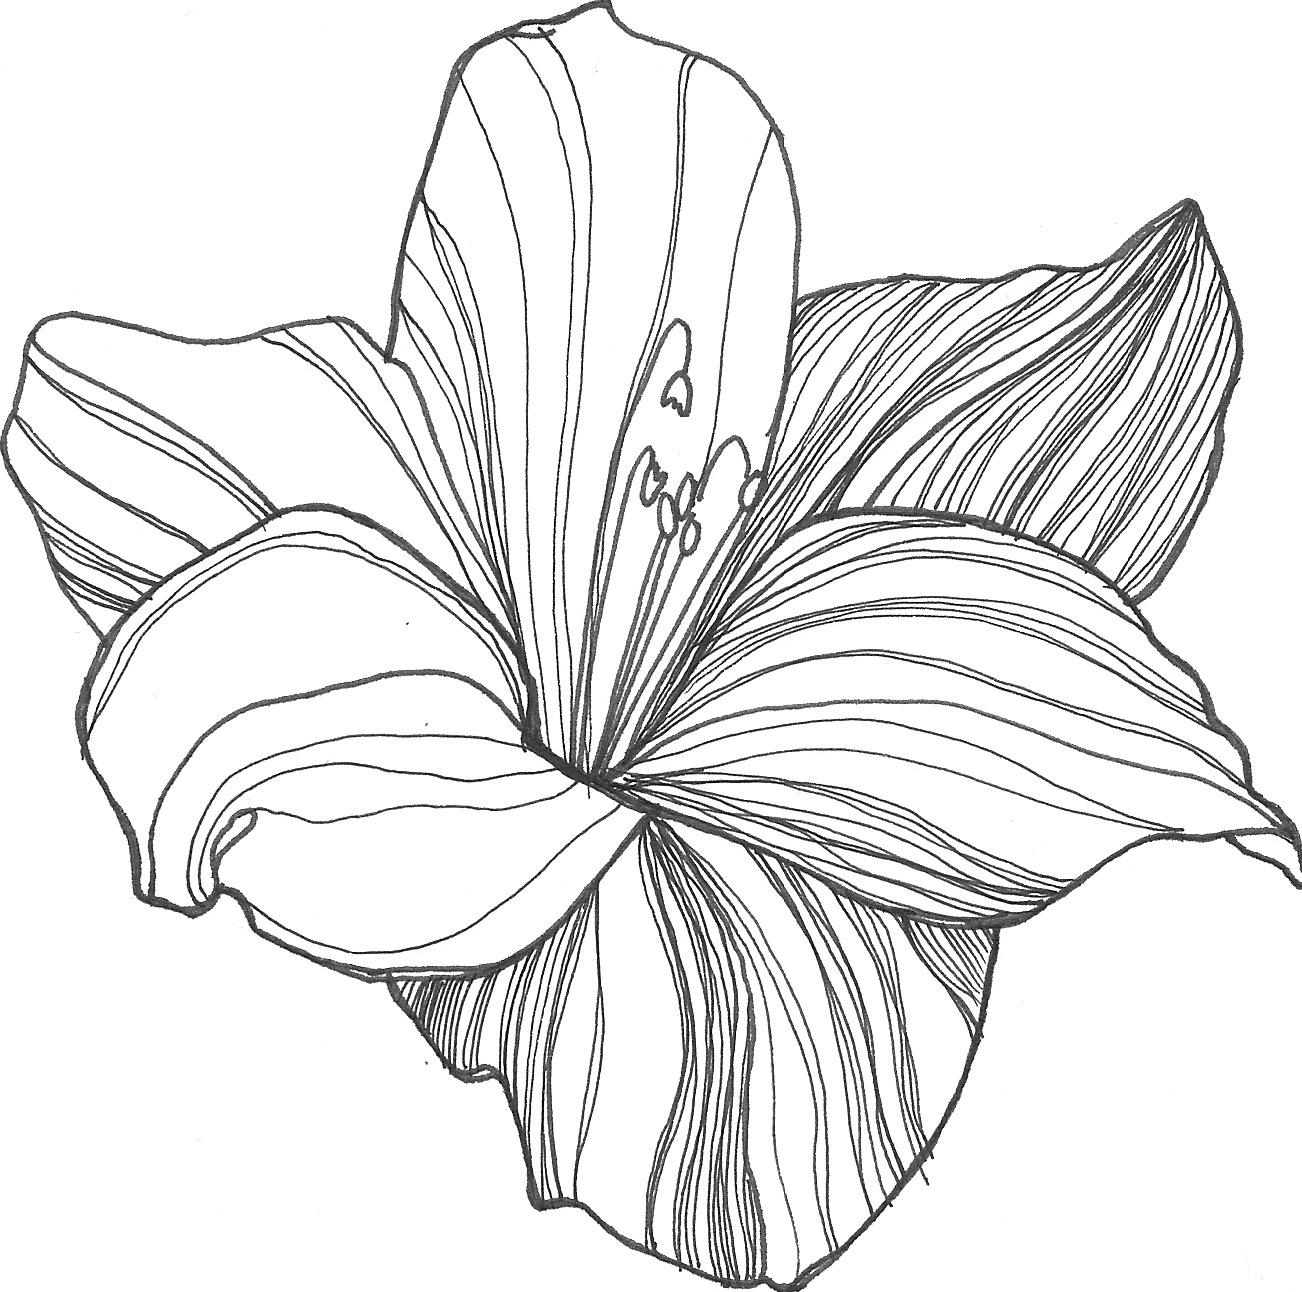 Flower drawings free download banner royalty free download Free flower drawings - ClipartFest banner royalty free download